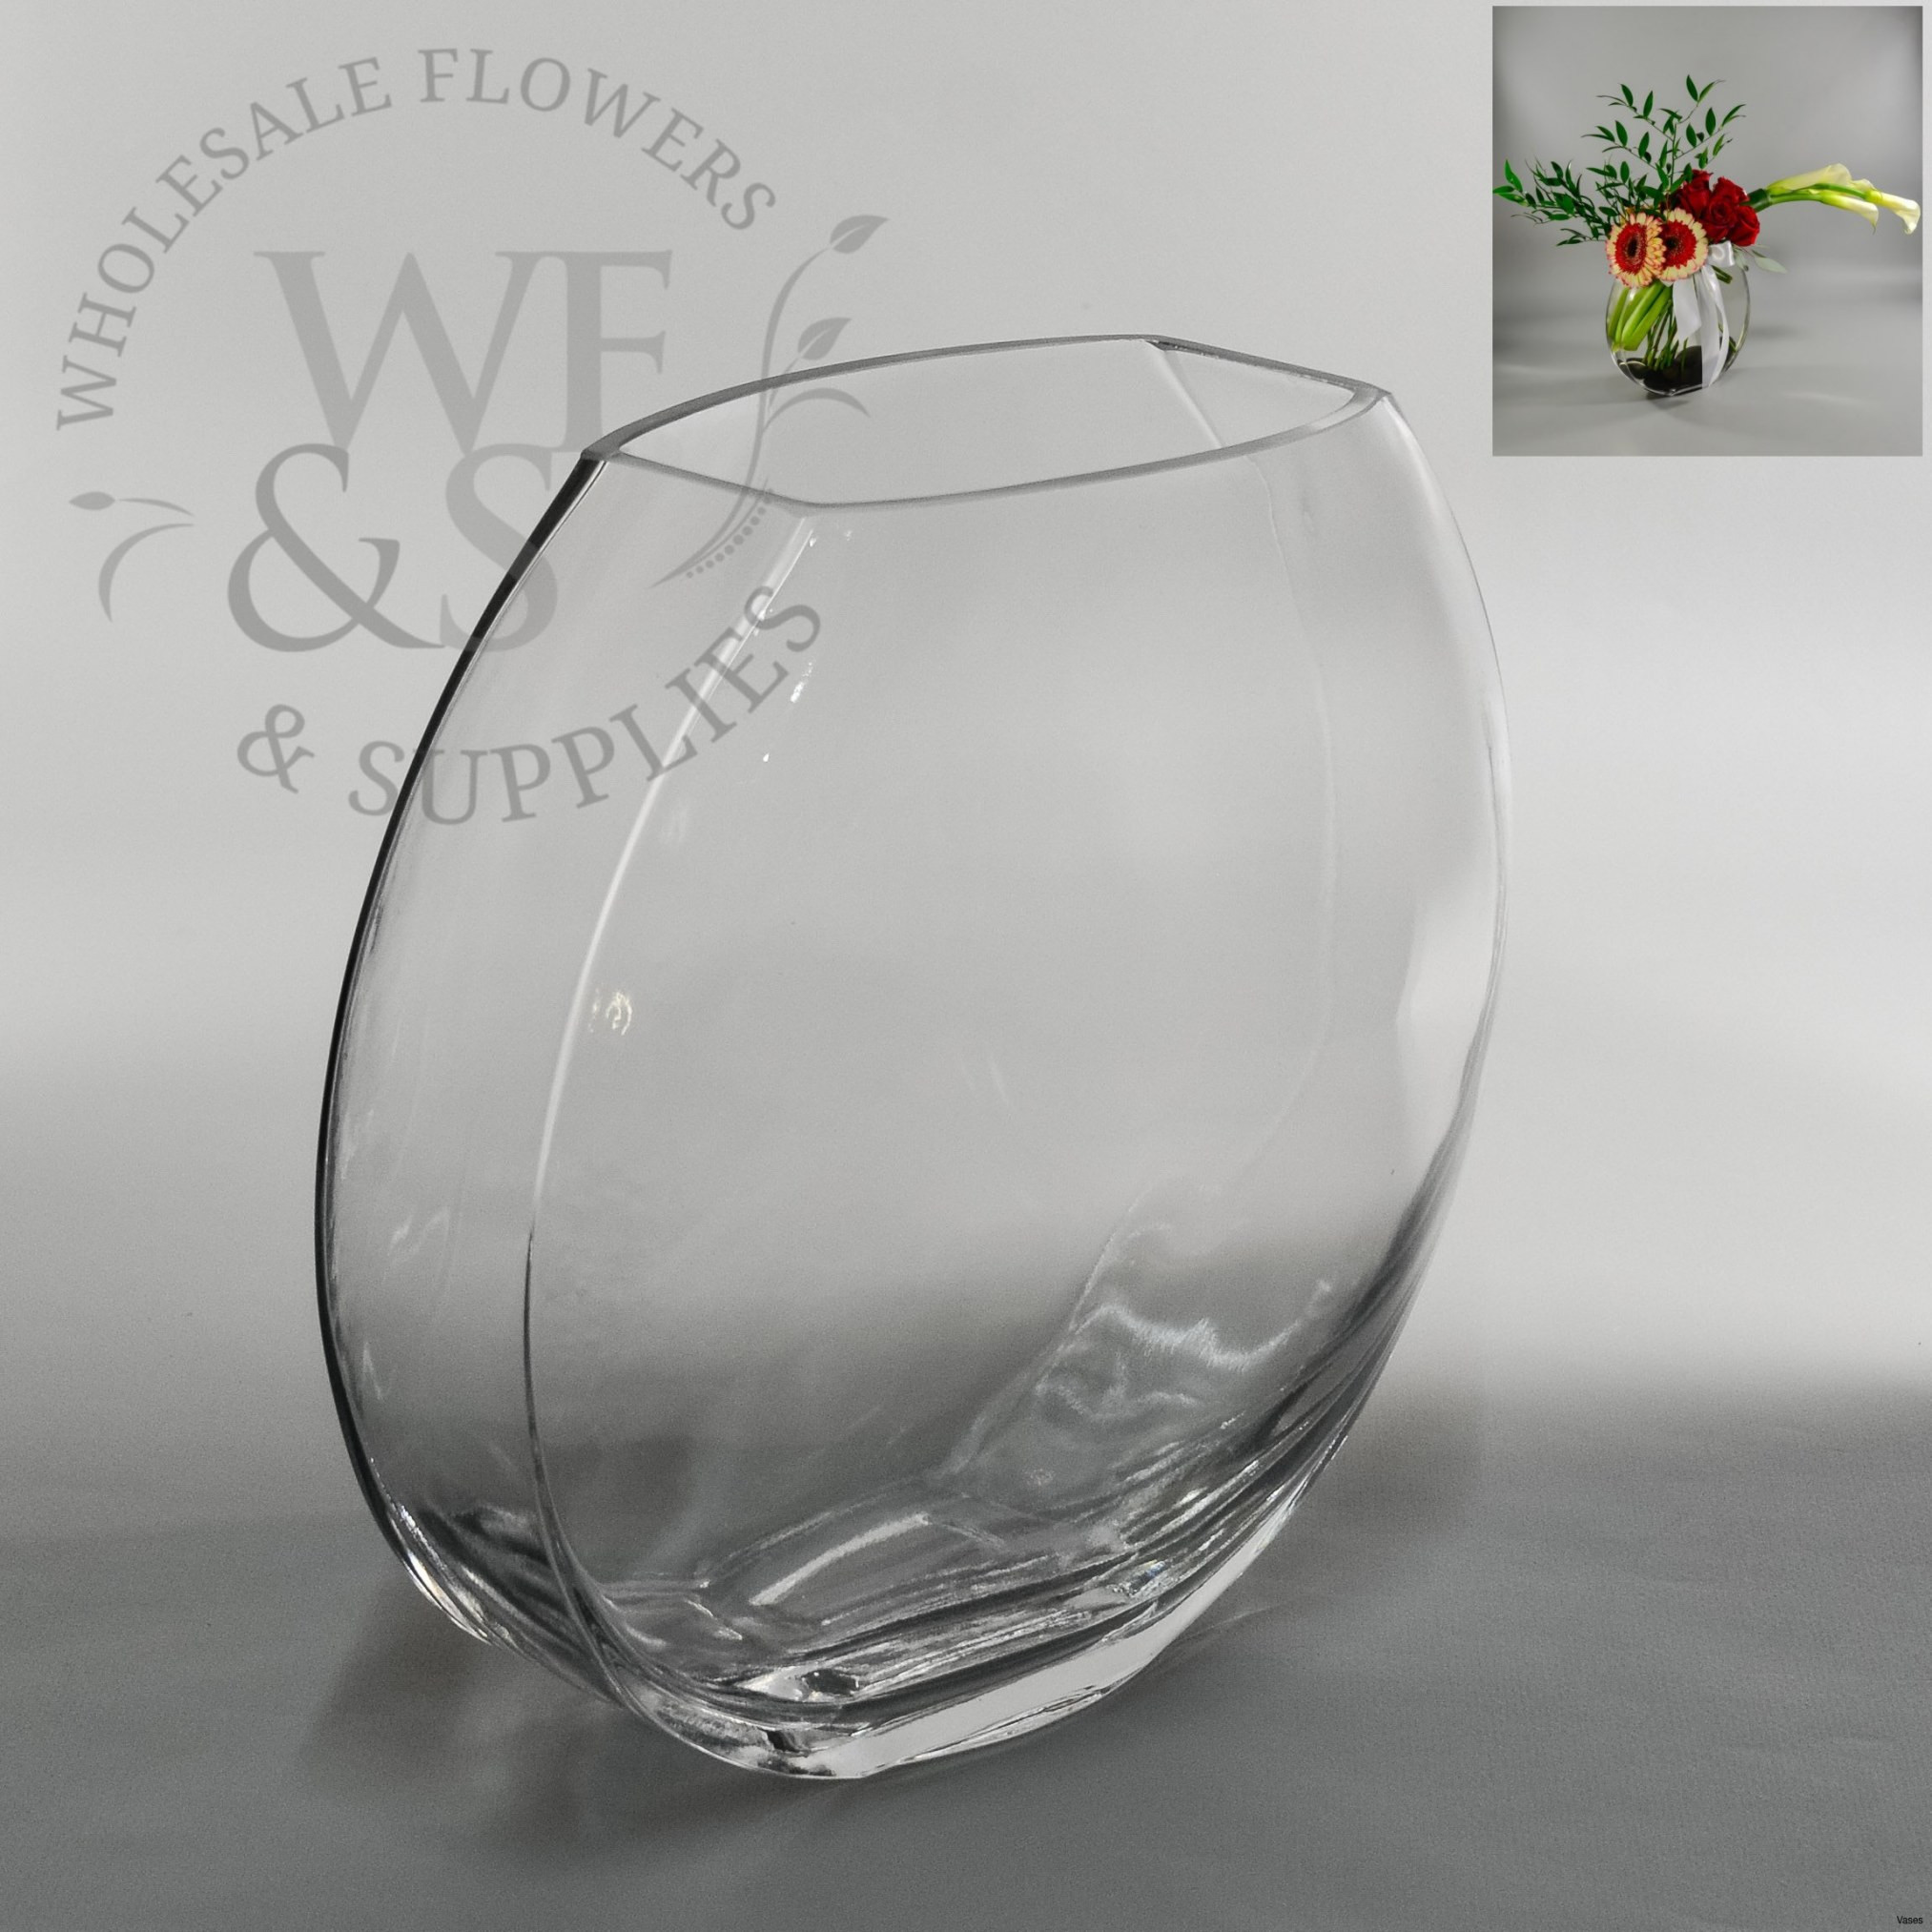 cheap recycled glass vases of glass fish vases pics vases bubble ball discount 15 vase round fish for glass fish vases image glass fish bowl decoration aquarium design vbw0916 hwh vases of glass fish